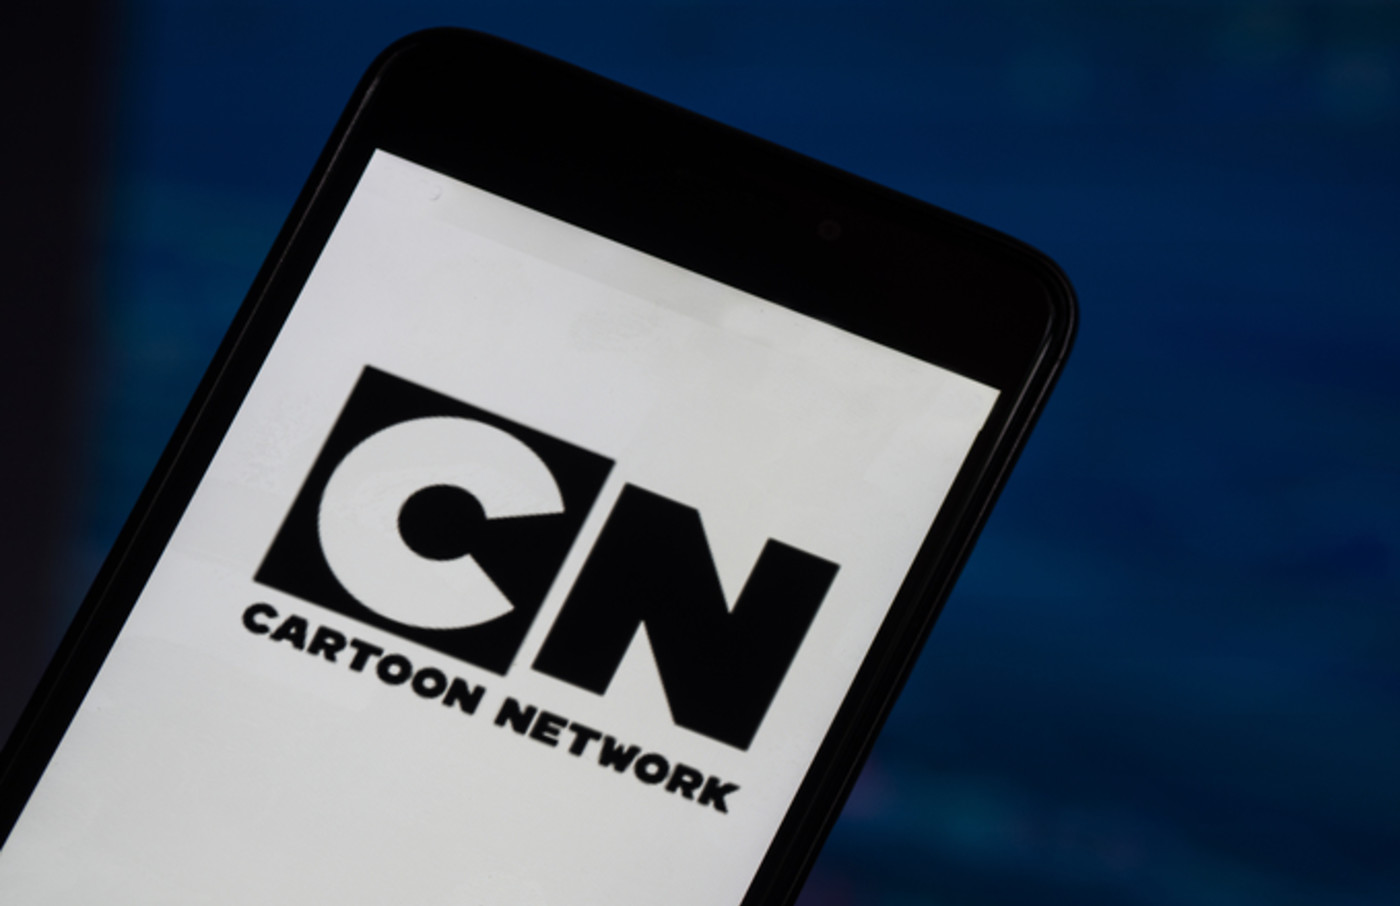 cartoon-network-cn-logo